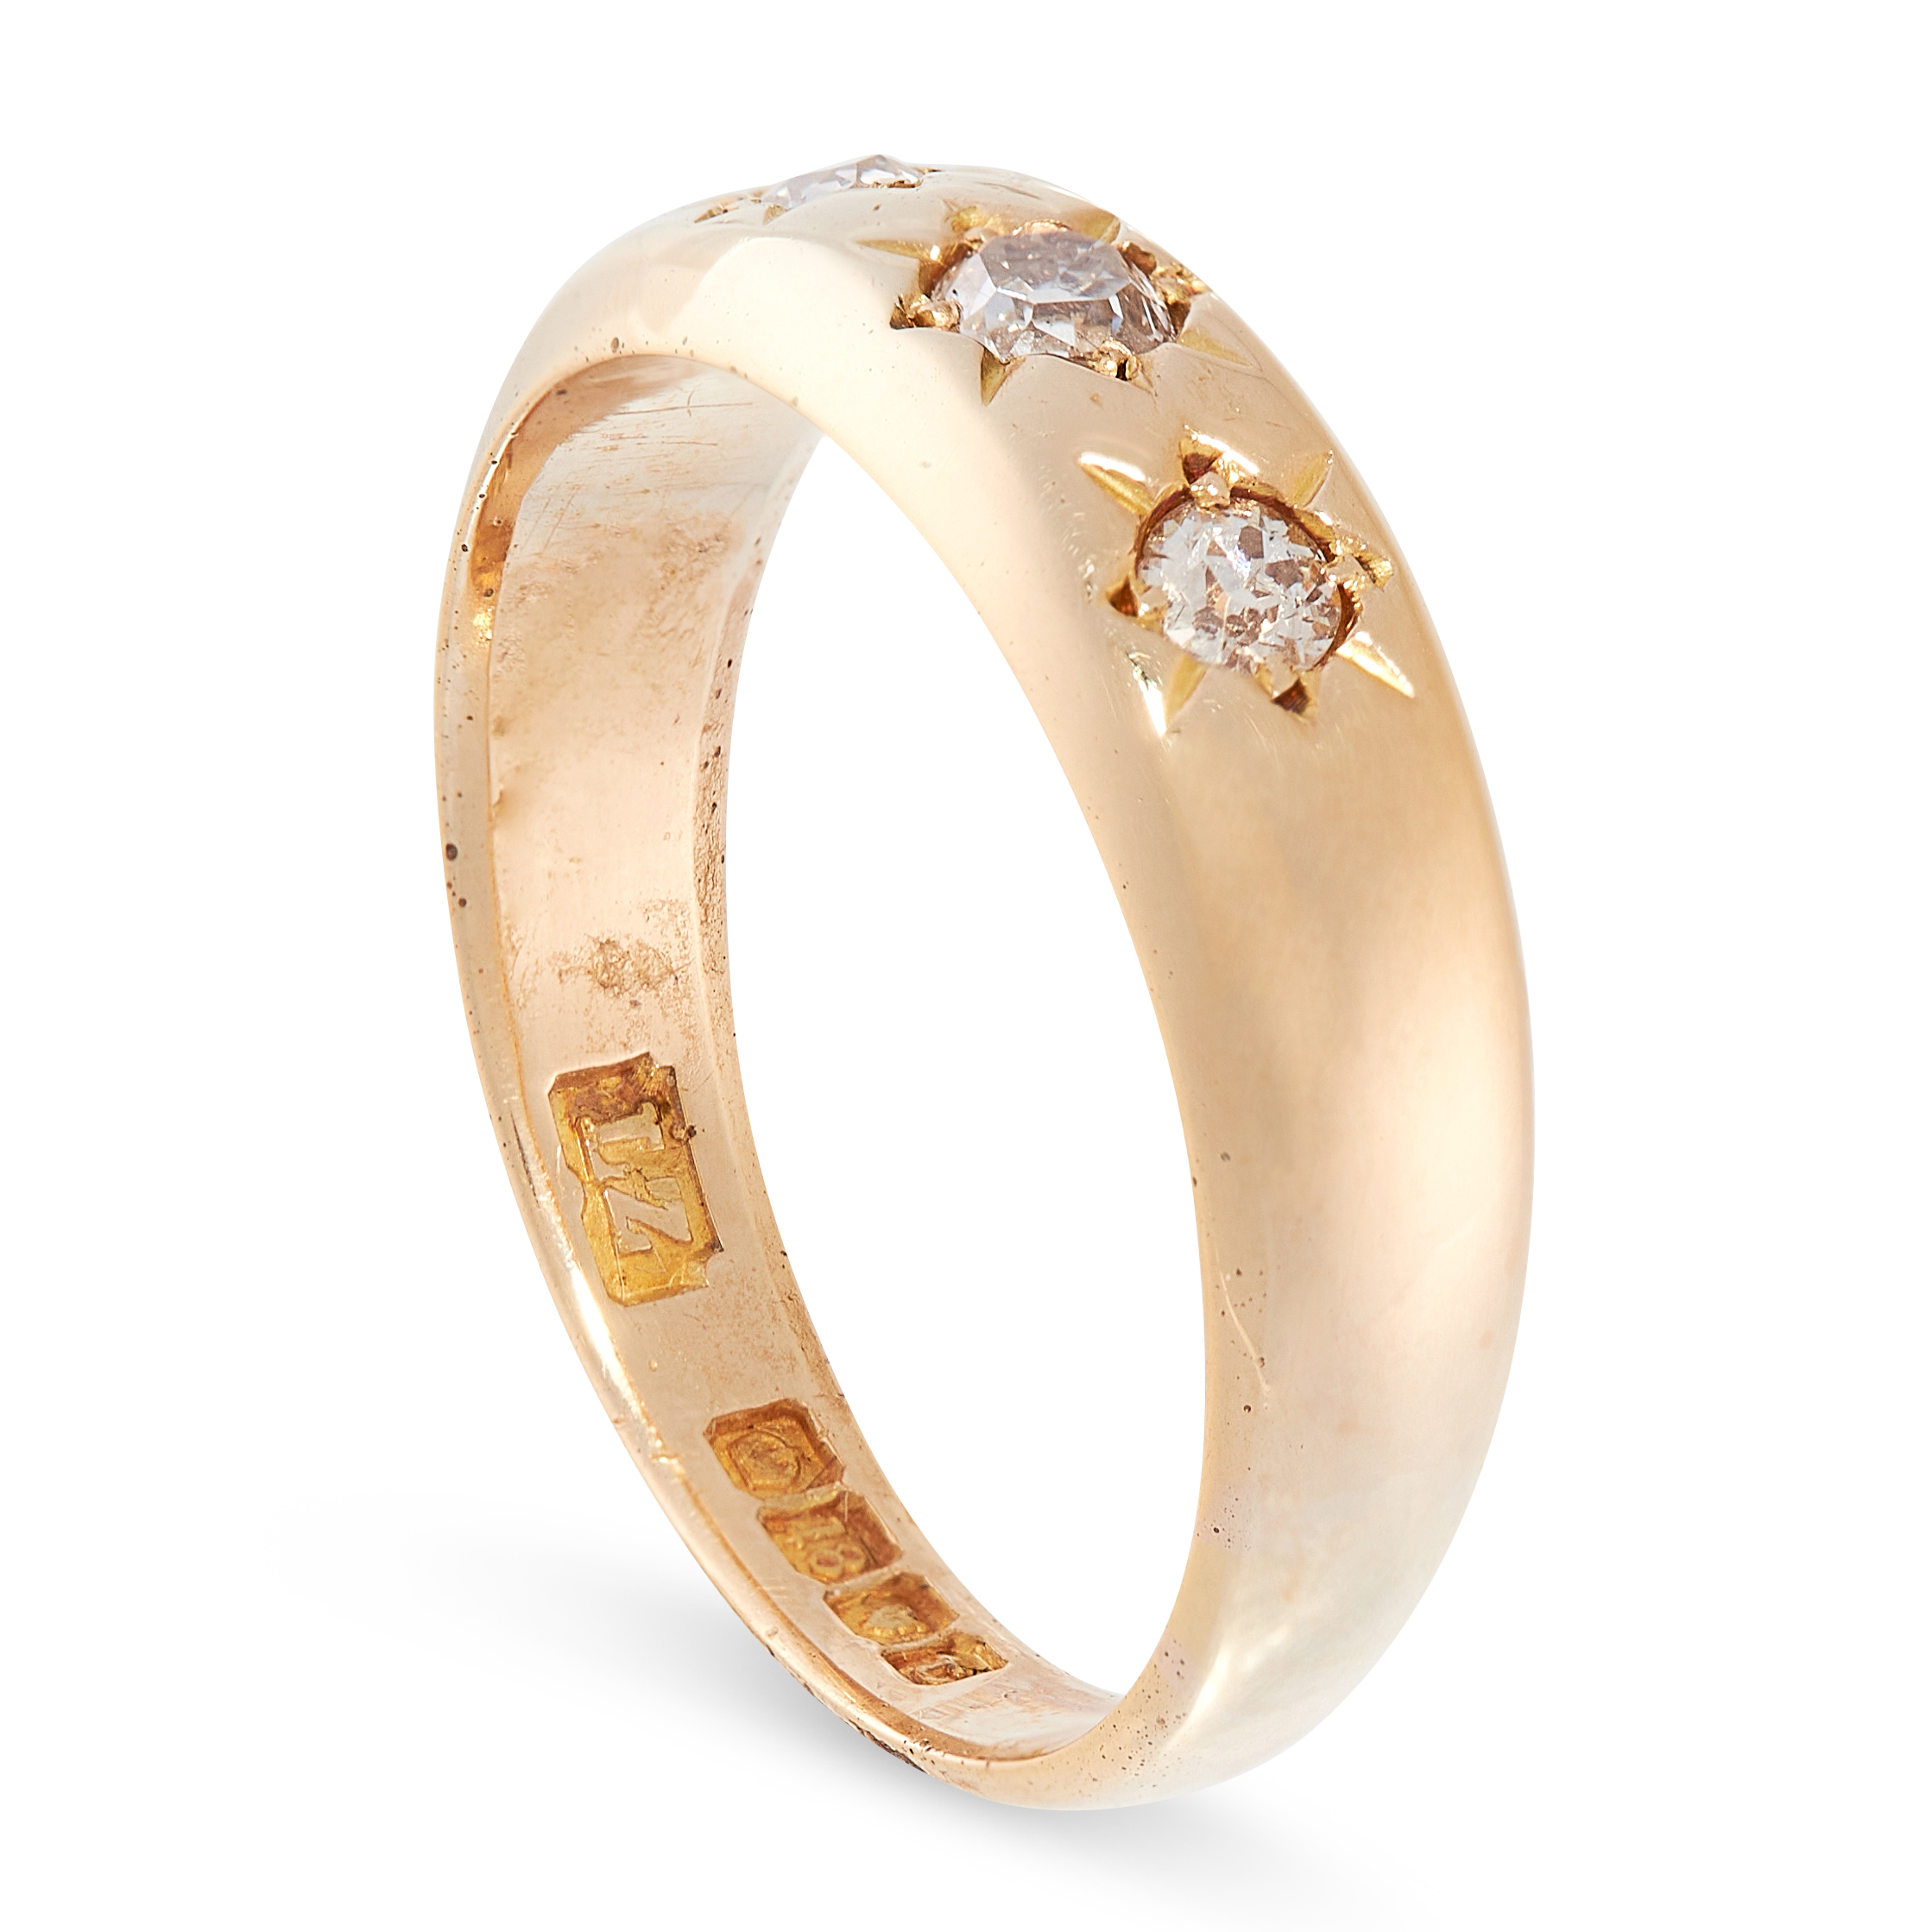 AN ANTIQUE DIAMOND GYPSY RING, 1914 in 18ct yellow gold, set with three old cut diamonds, full - Image 2 of 2